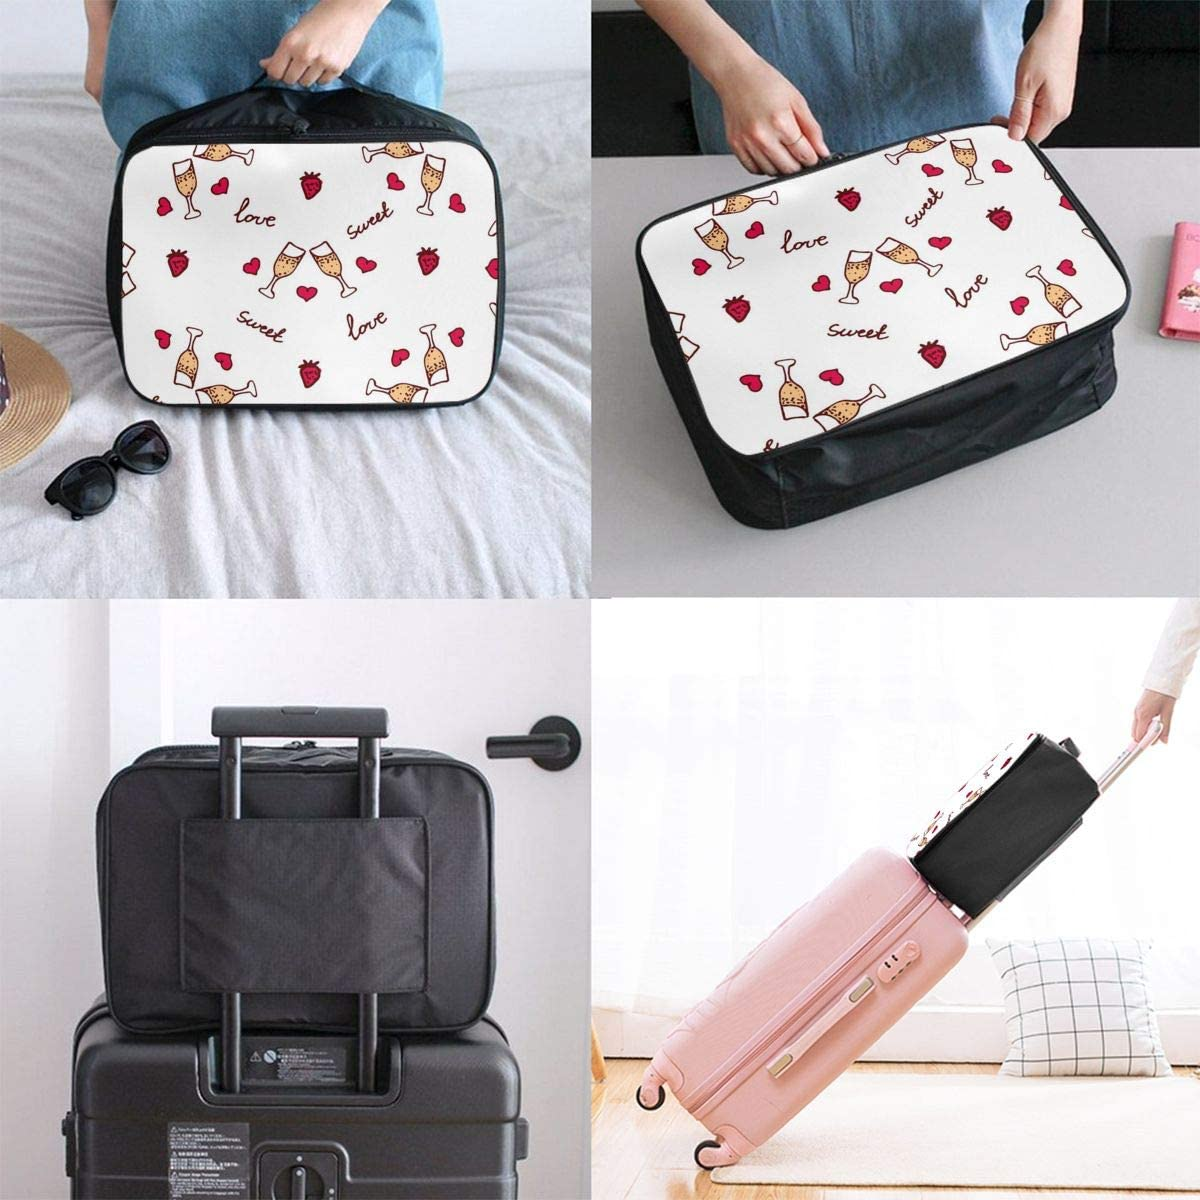 Yunshm Wine Glasses And Strawberries Filled With Wine Customized Trolley Handbag Waterproof Unisex Large Capacity For Business Travel Storage